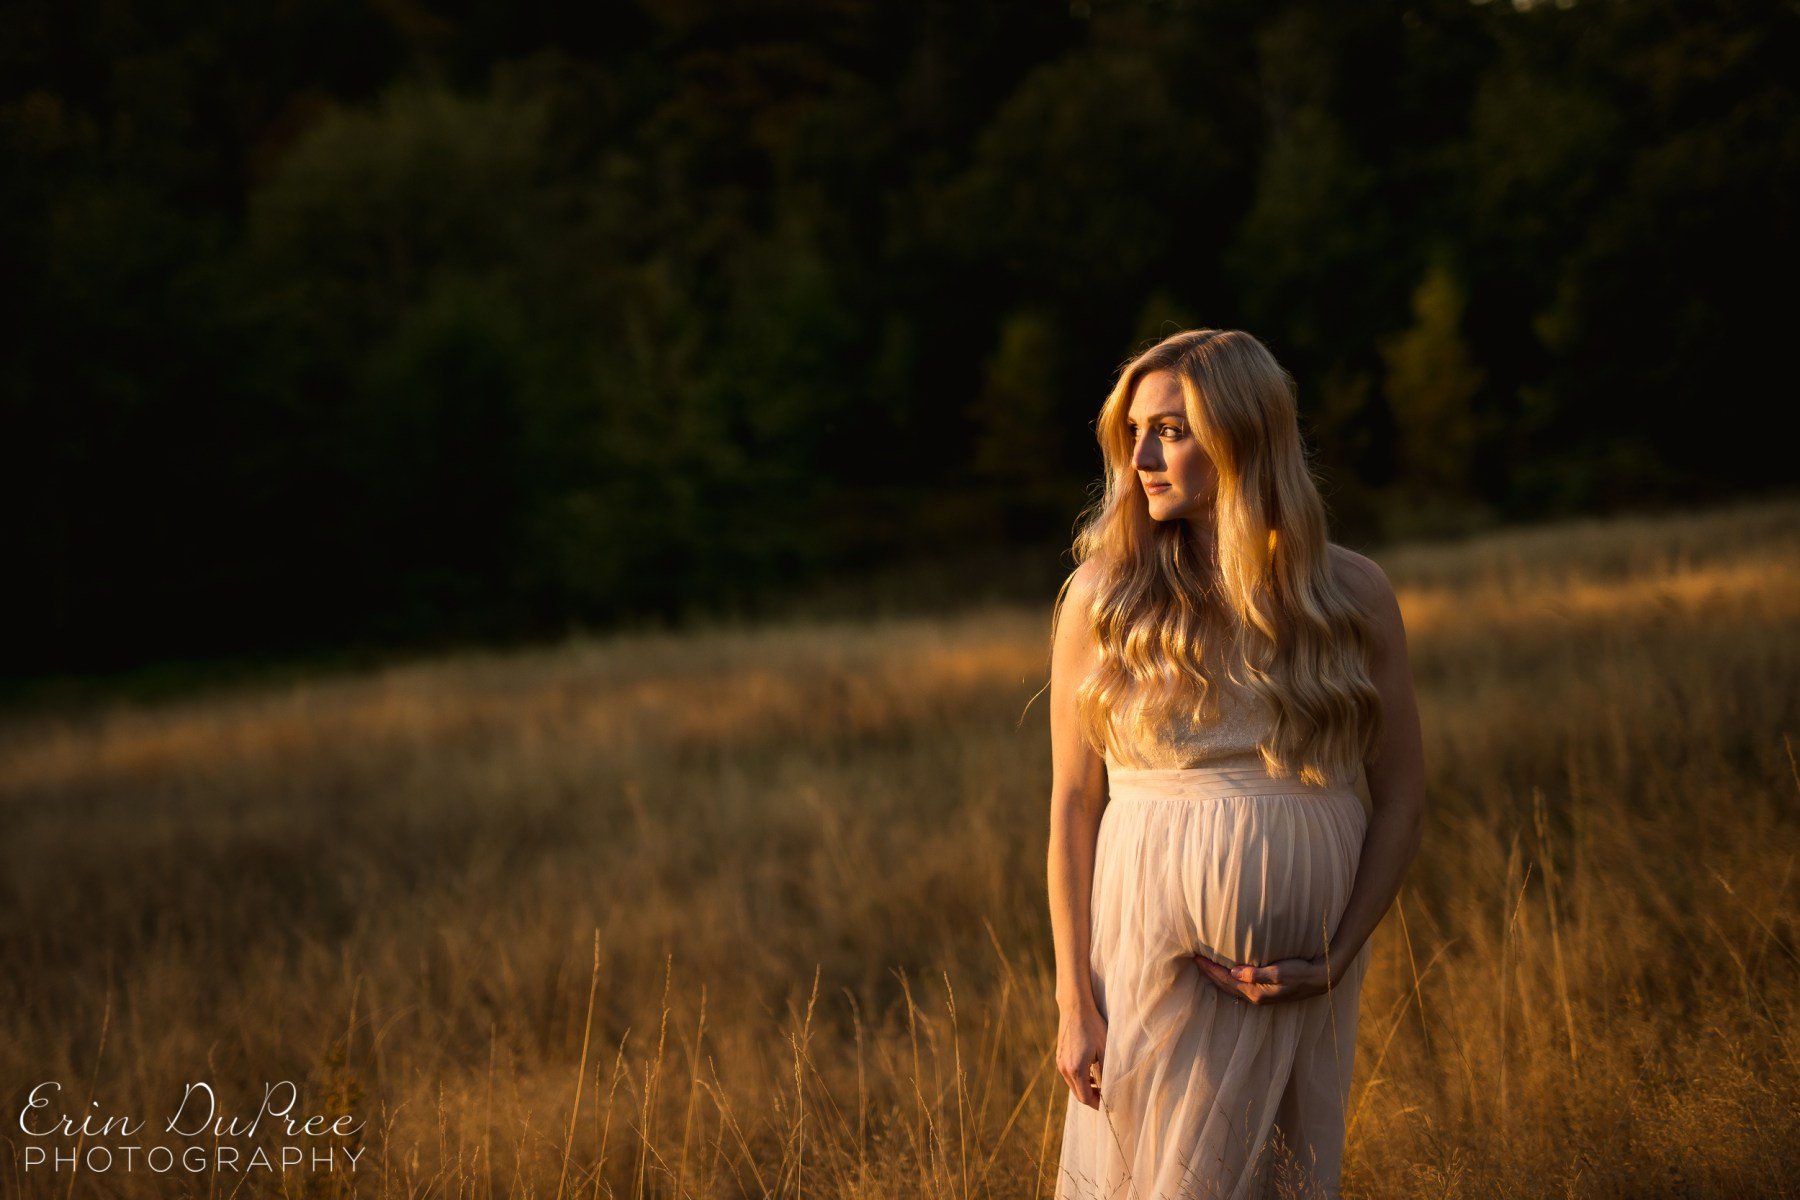 Pregnant woman posing for maternity photo in grassy field by Seattle Maternity Photographer